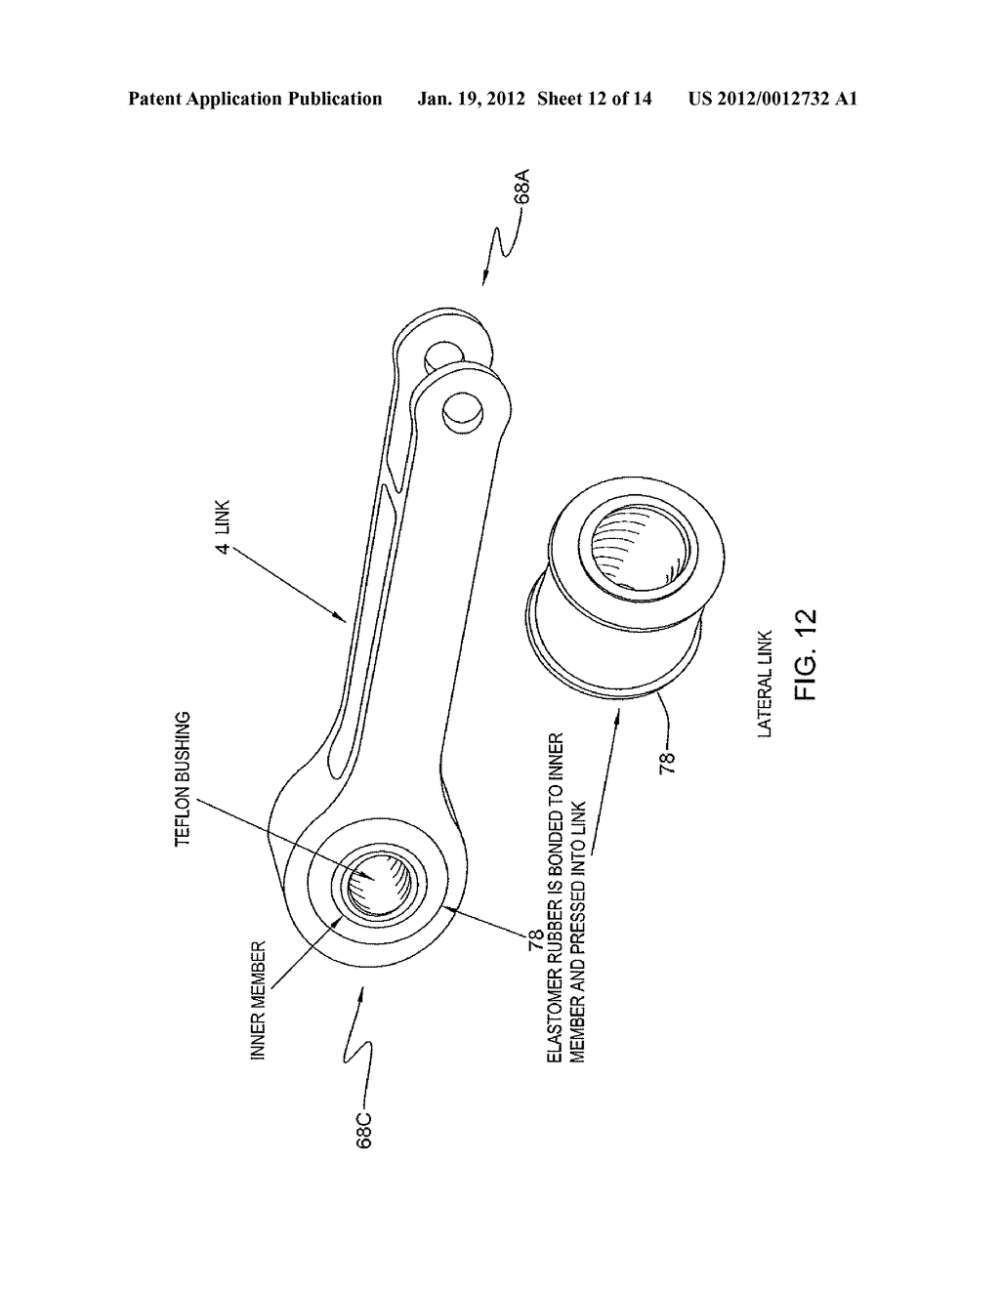 medium resolution of helicopter engine mounting system and methods diagram schematic and image 13